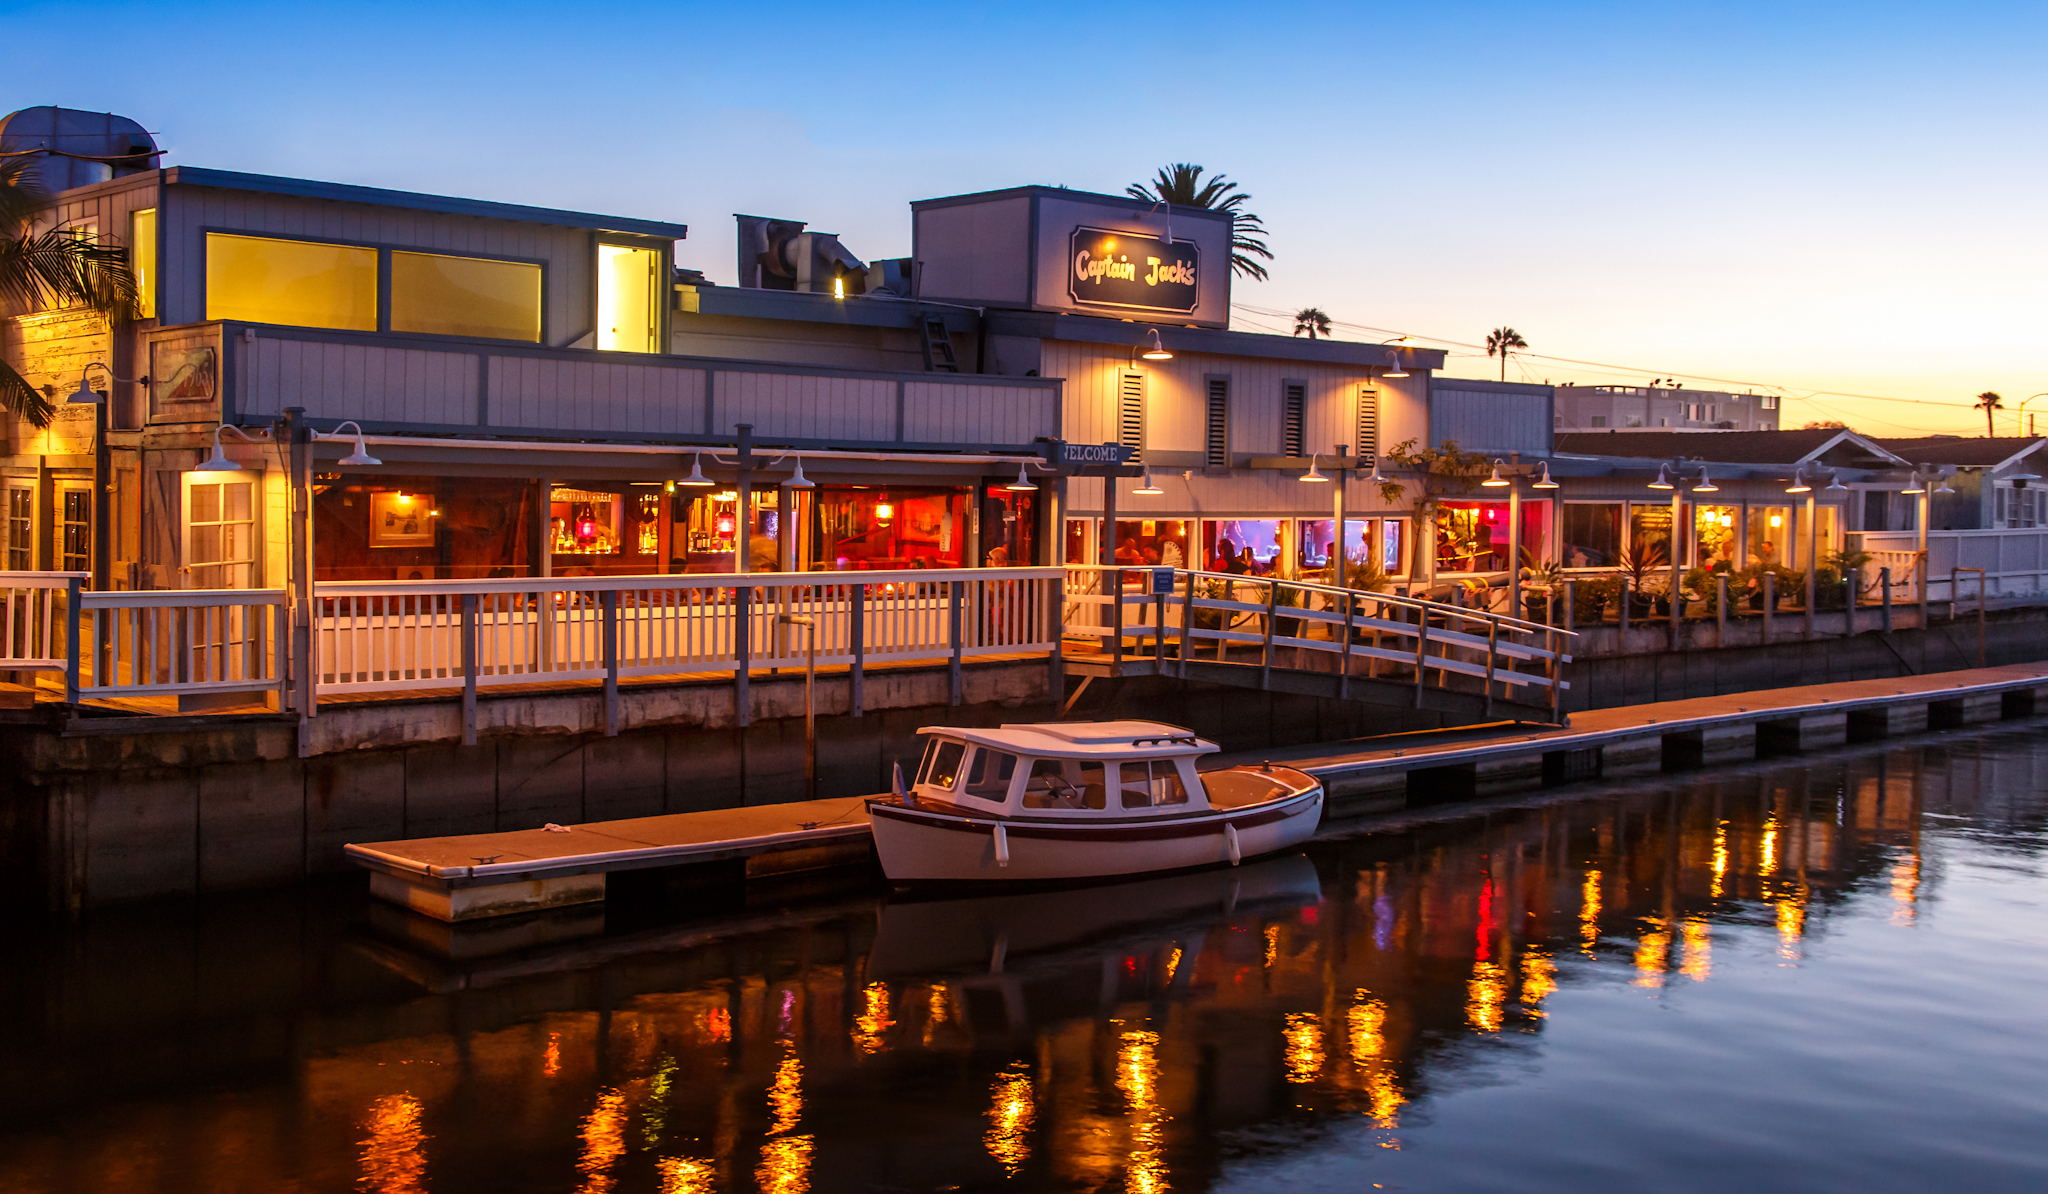 waterfront exterior view of Captain Jacks restaurant